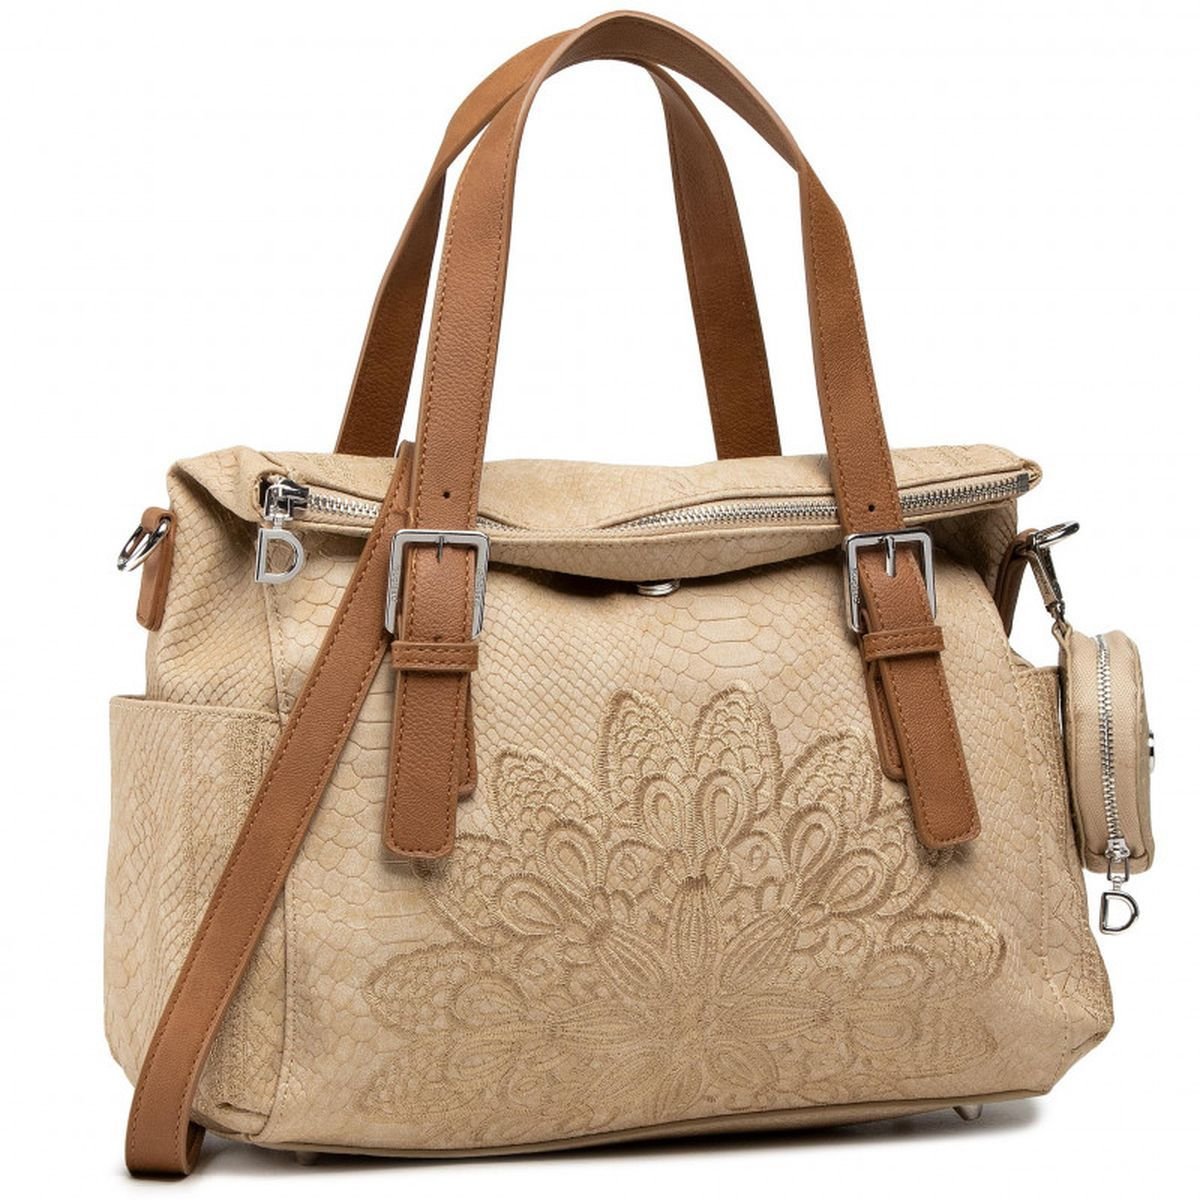 GIZEH BOLS_SUMMER AQUILES LOVERTY:BEIGE/SIMILI CUIR/TEXTILE//Beige